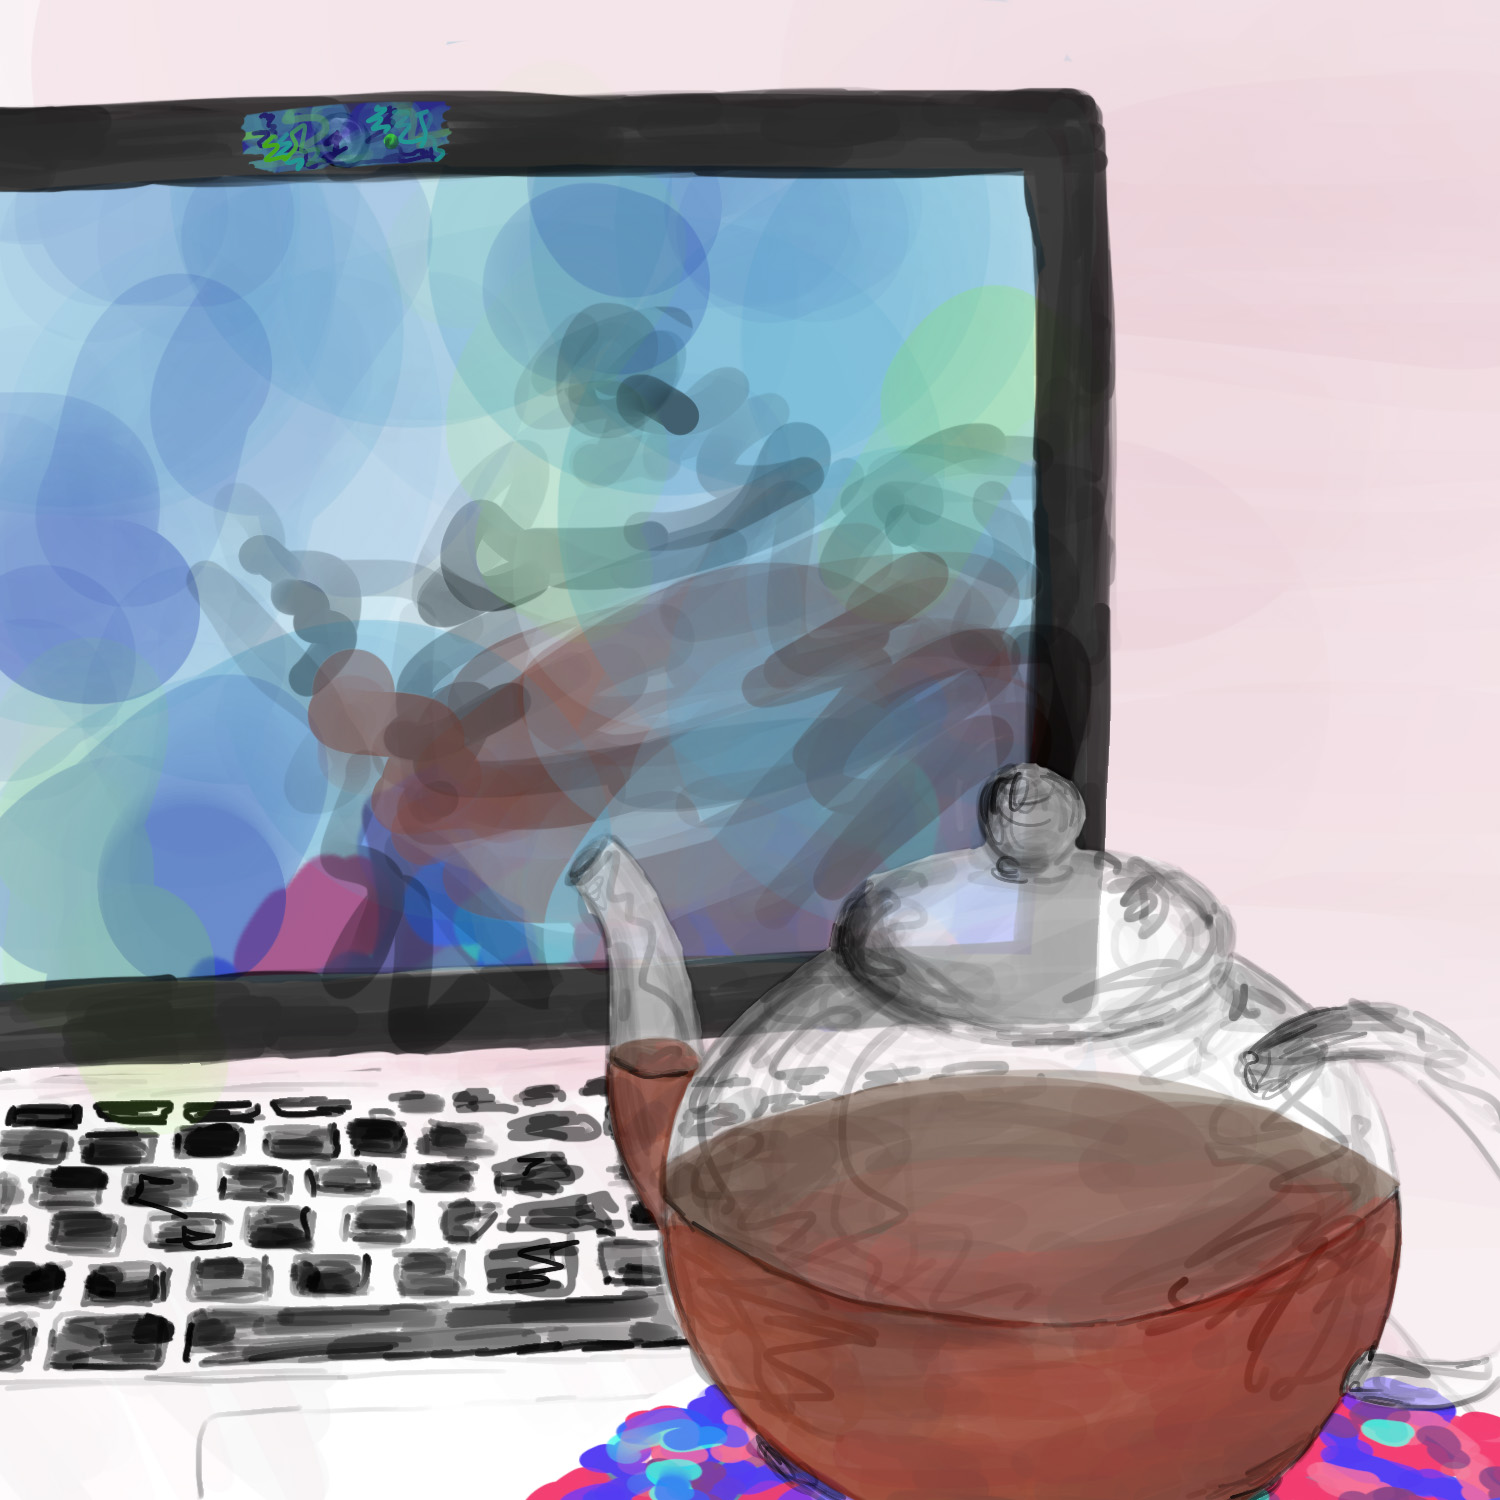 A teapot by a laptop with its webcam on, but the image of the teapot is relatively obscured on the screen because the webcam is covered by a piece of translucent tape